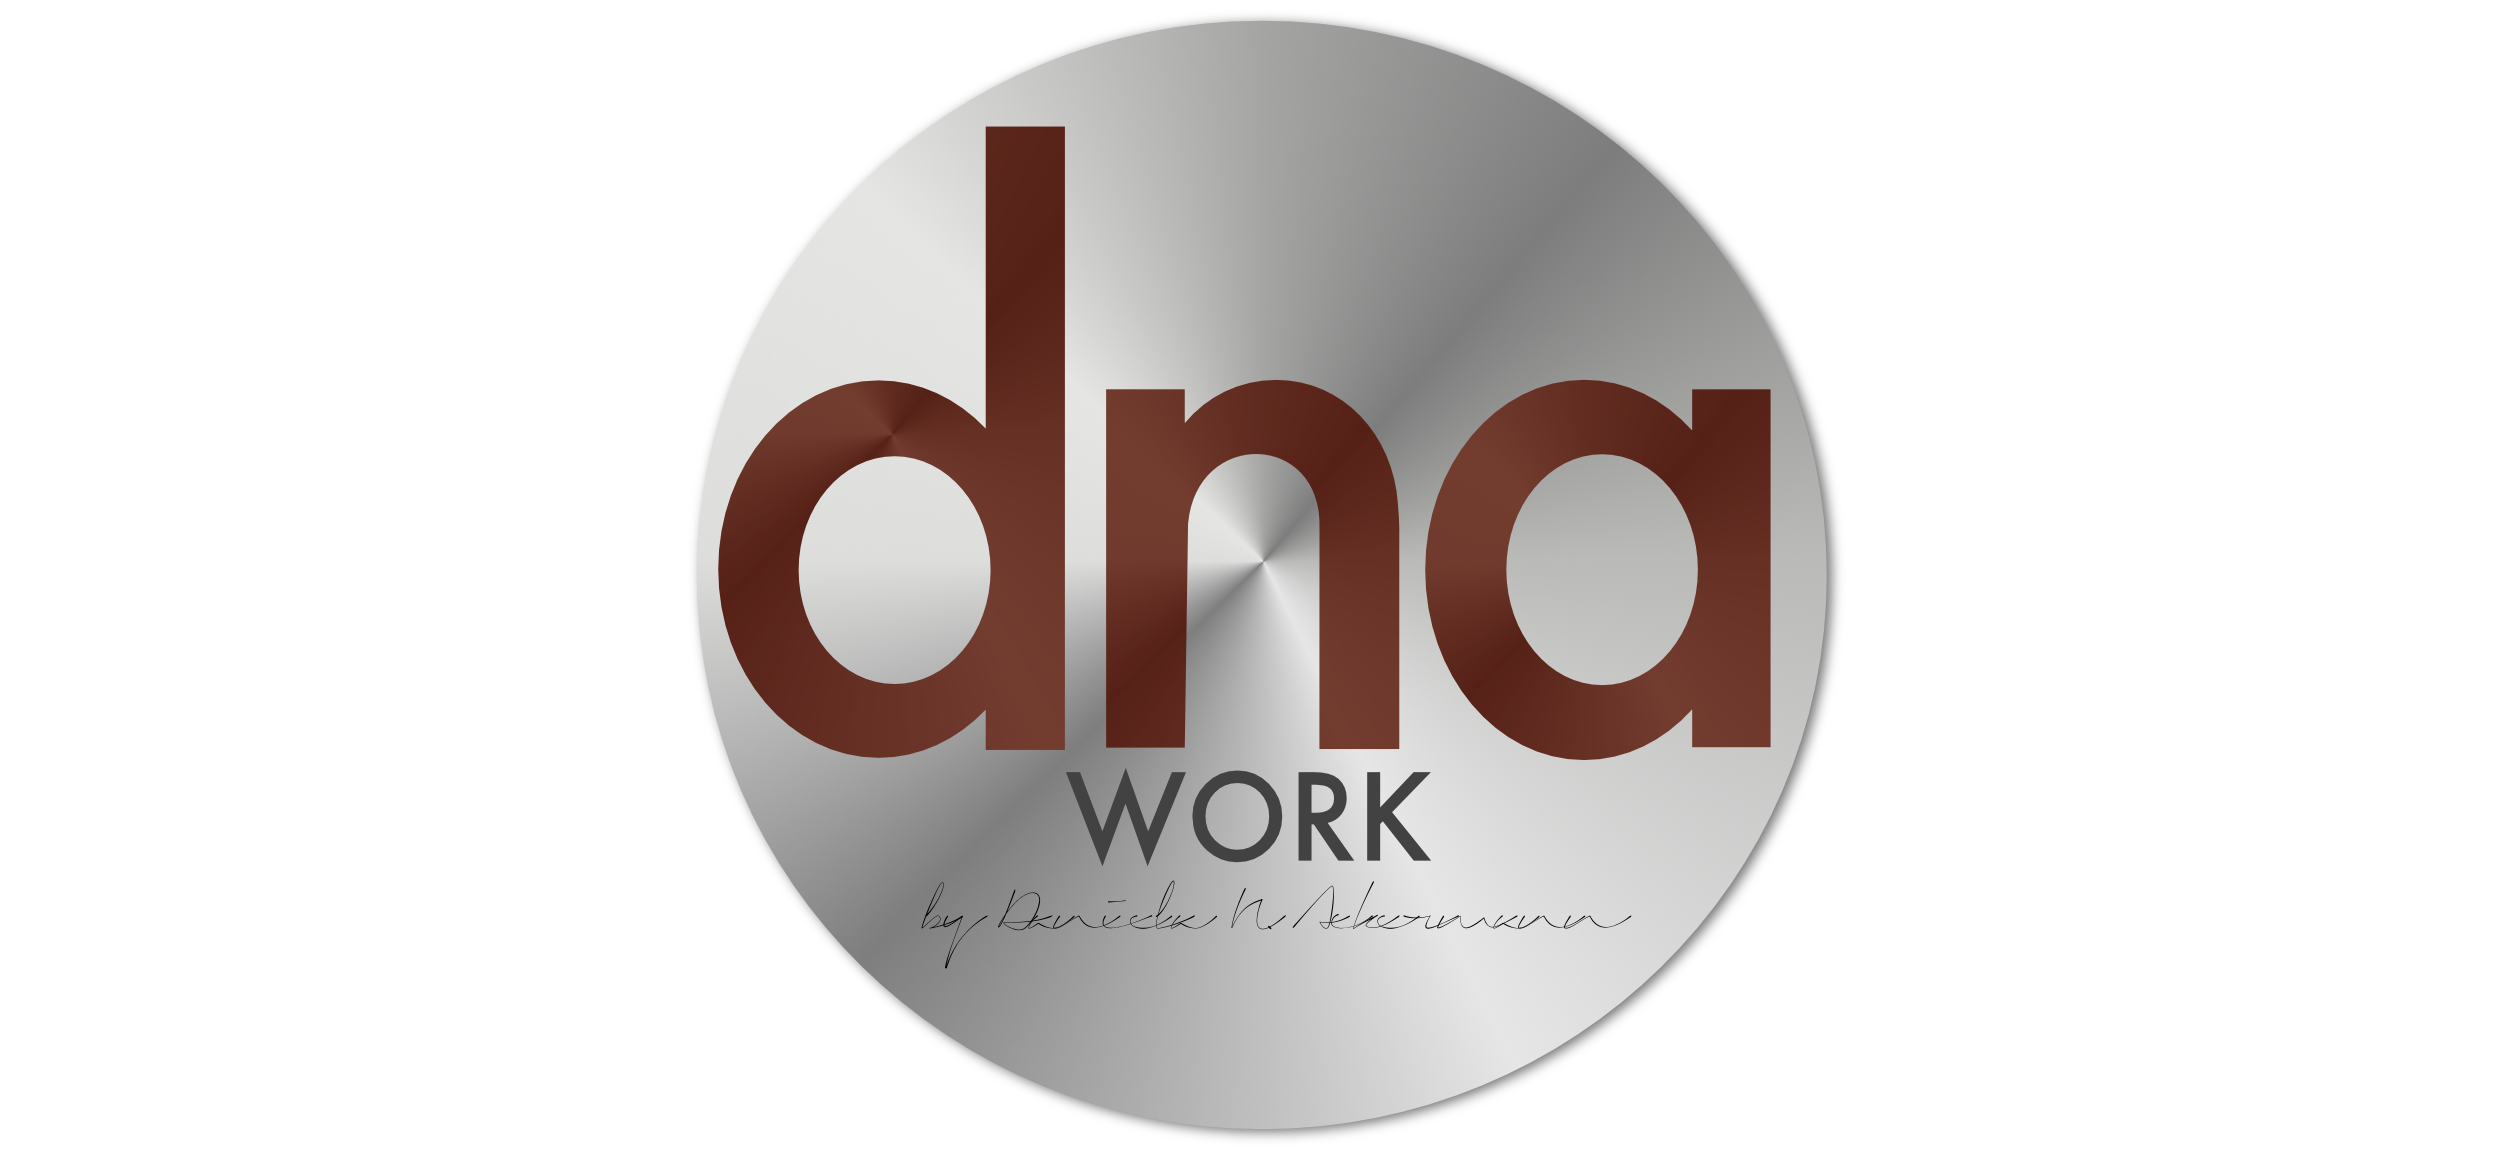 dna work logo 2015 button Kopie